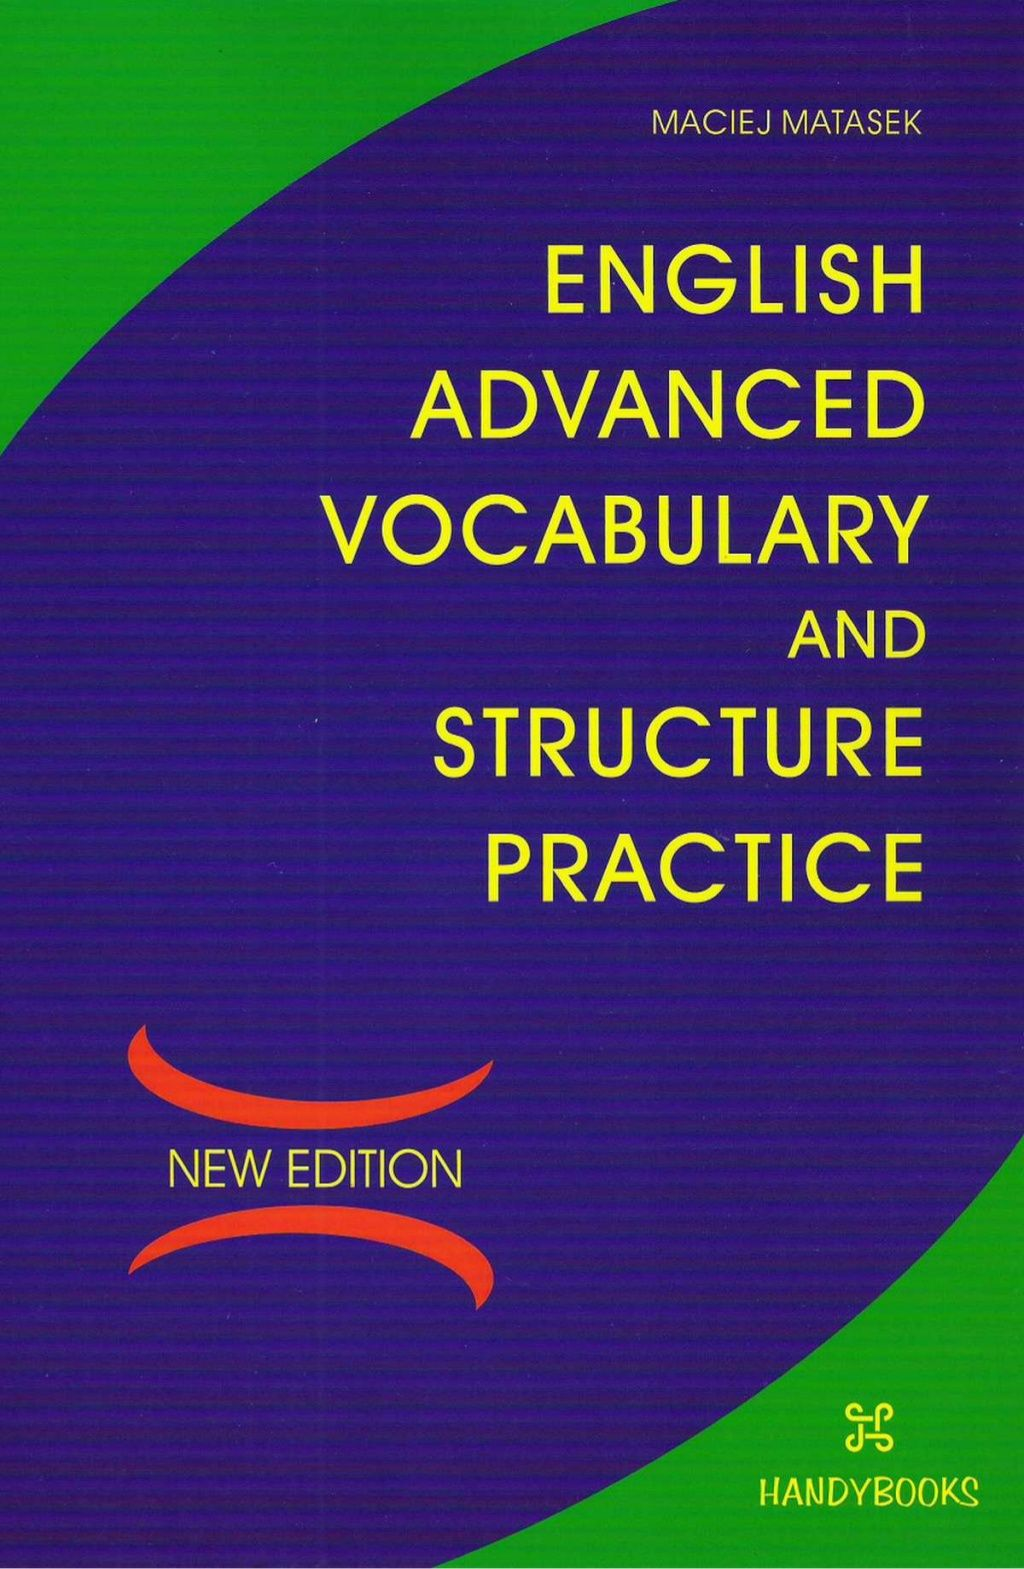 English Advanced Vocabulary And Structure Practice By Thaibinh Nguyen Via Slideshare